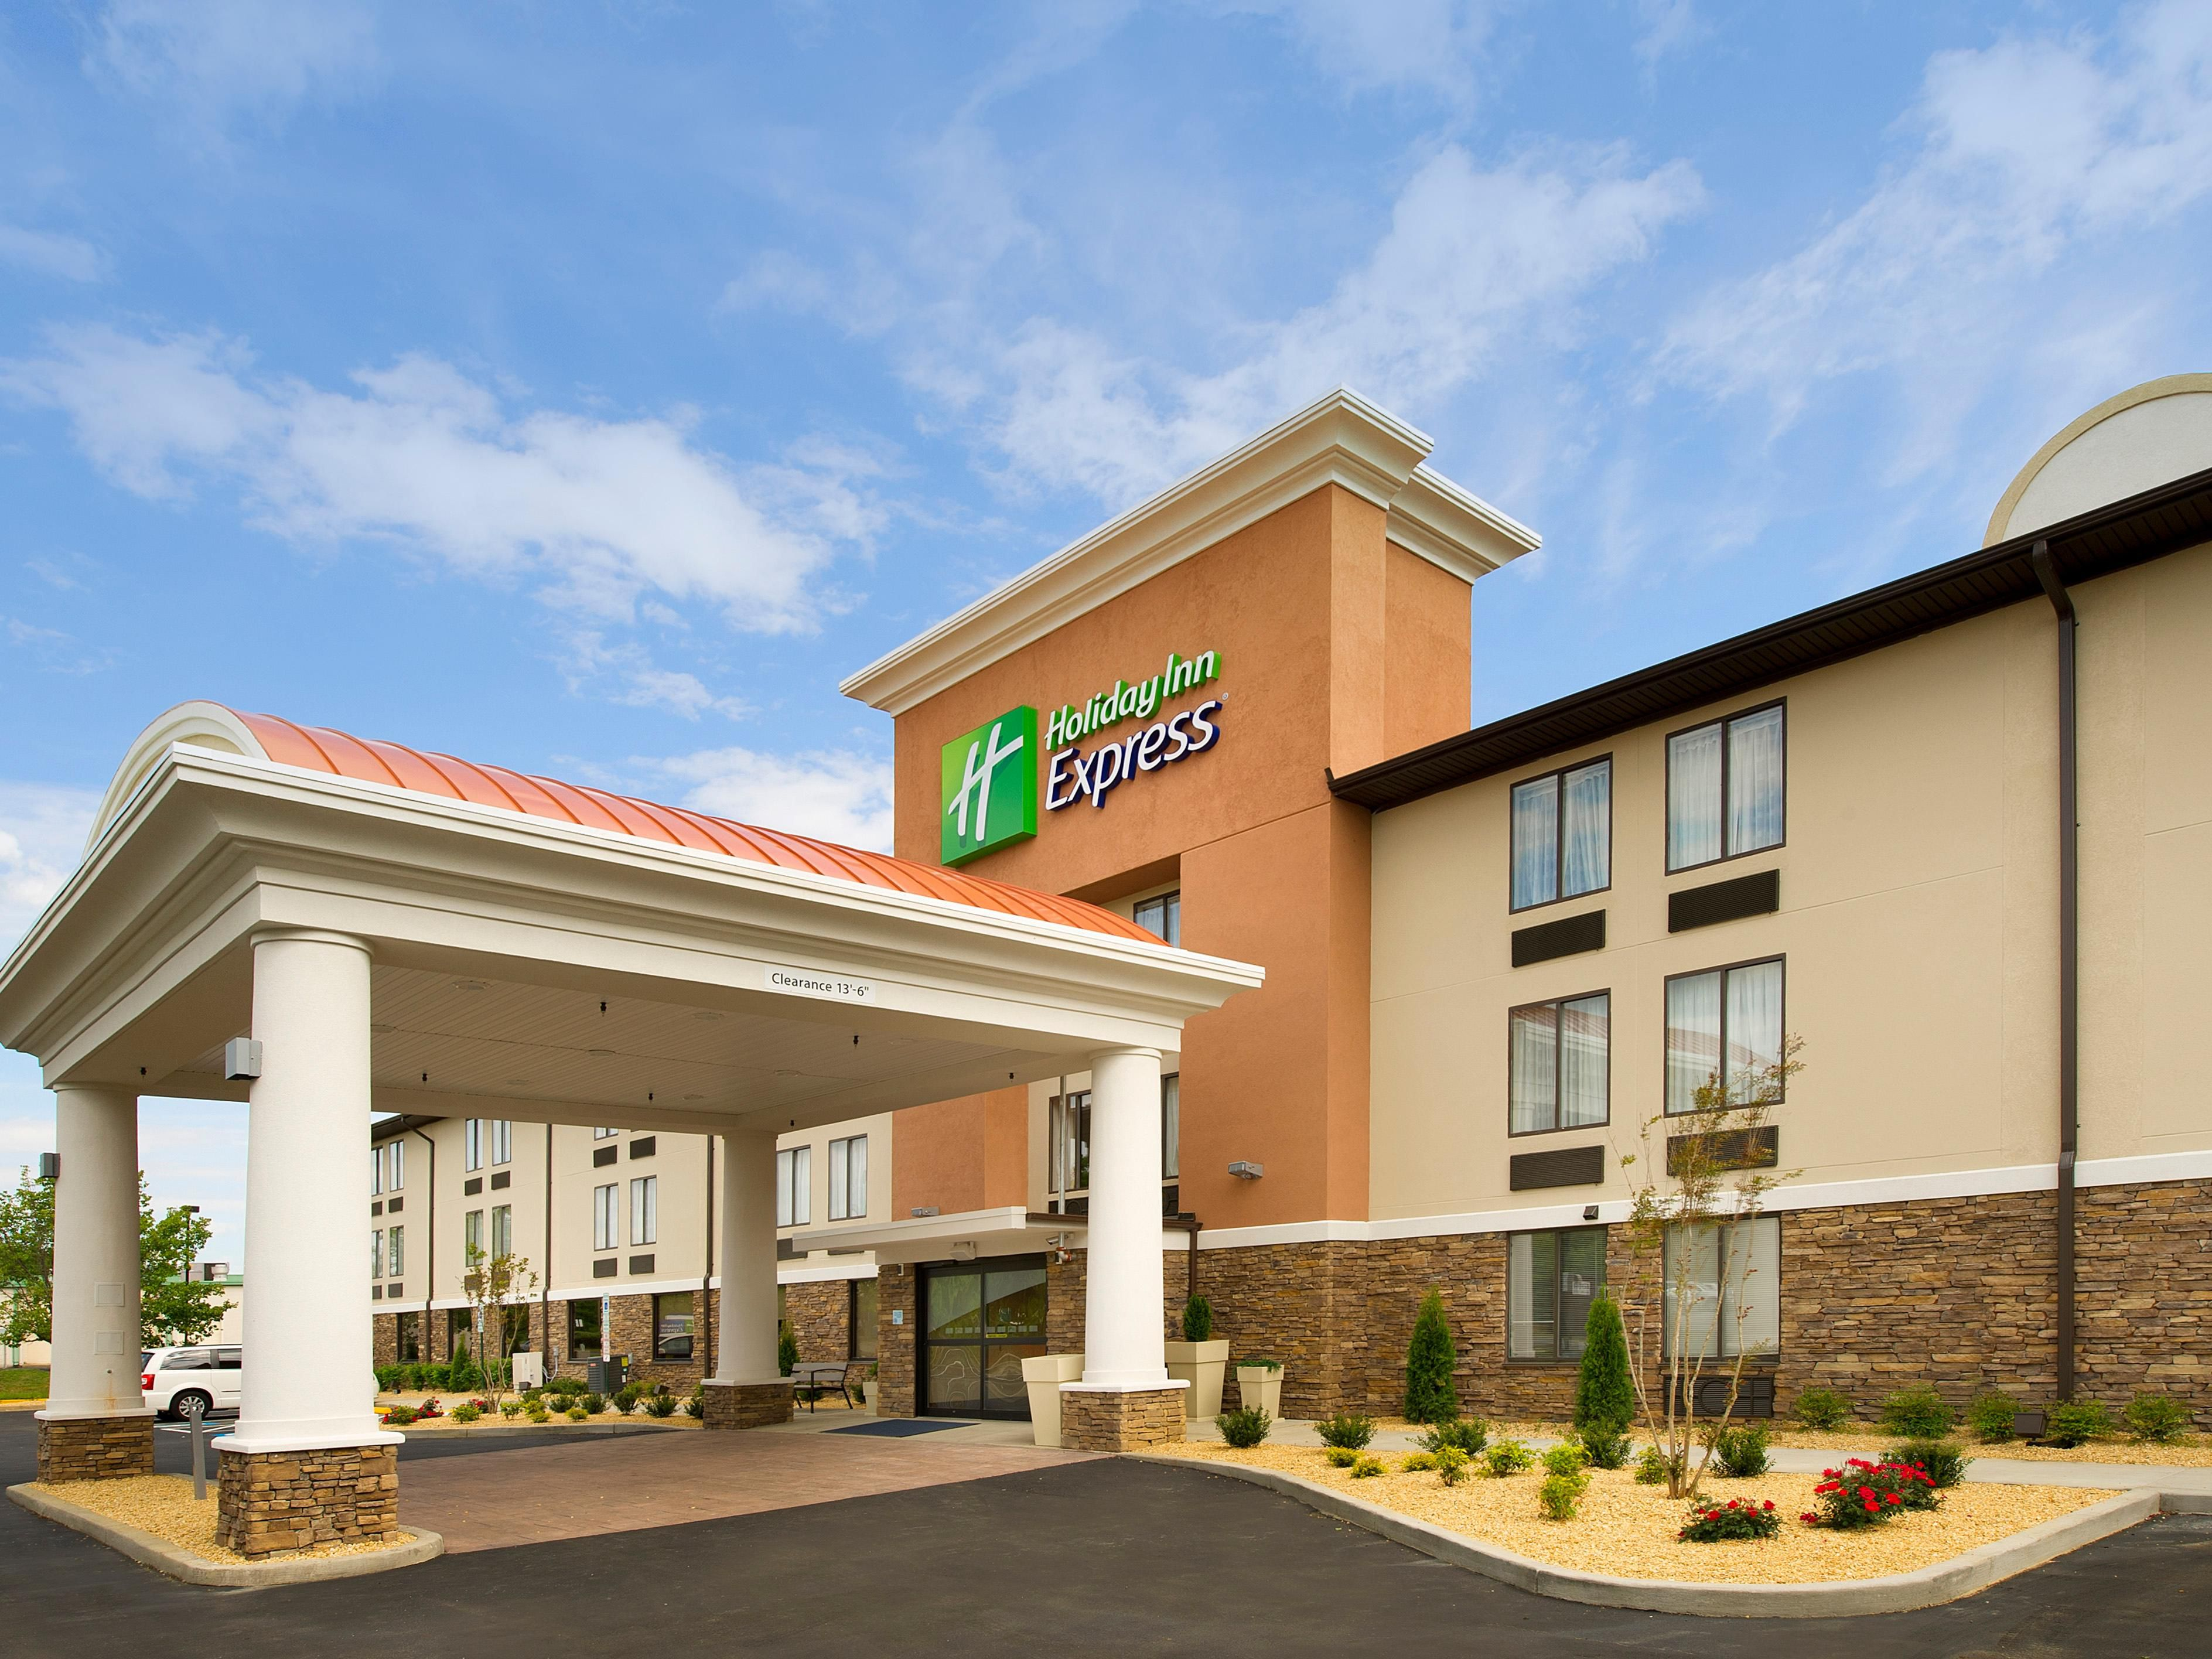 Welcome to the Holiday Inn Express Waldorf!